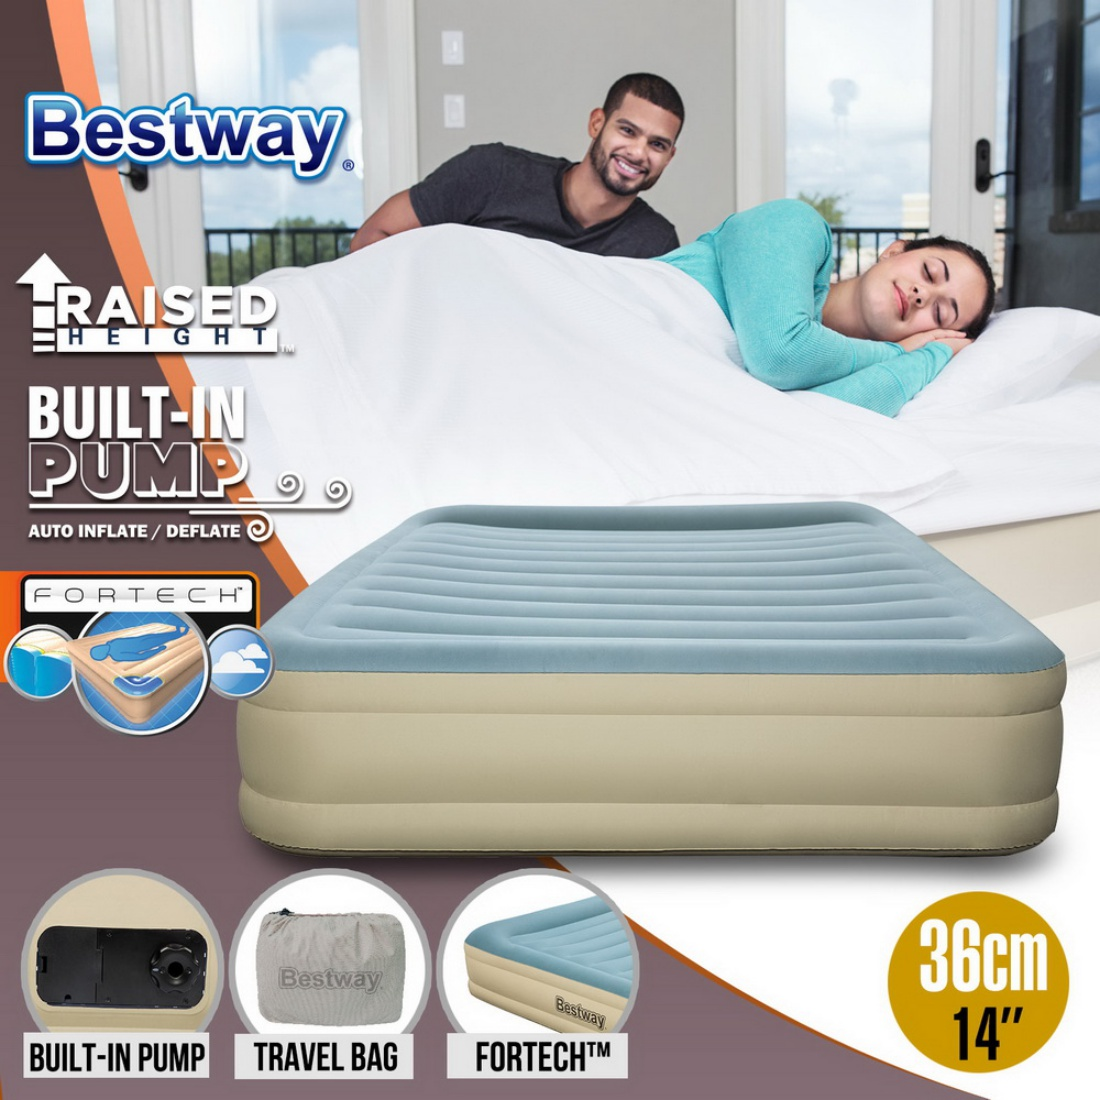 Bestway Queen Size Air Bed Inflatable Mattress Sleeping Mat Essence Fortech™